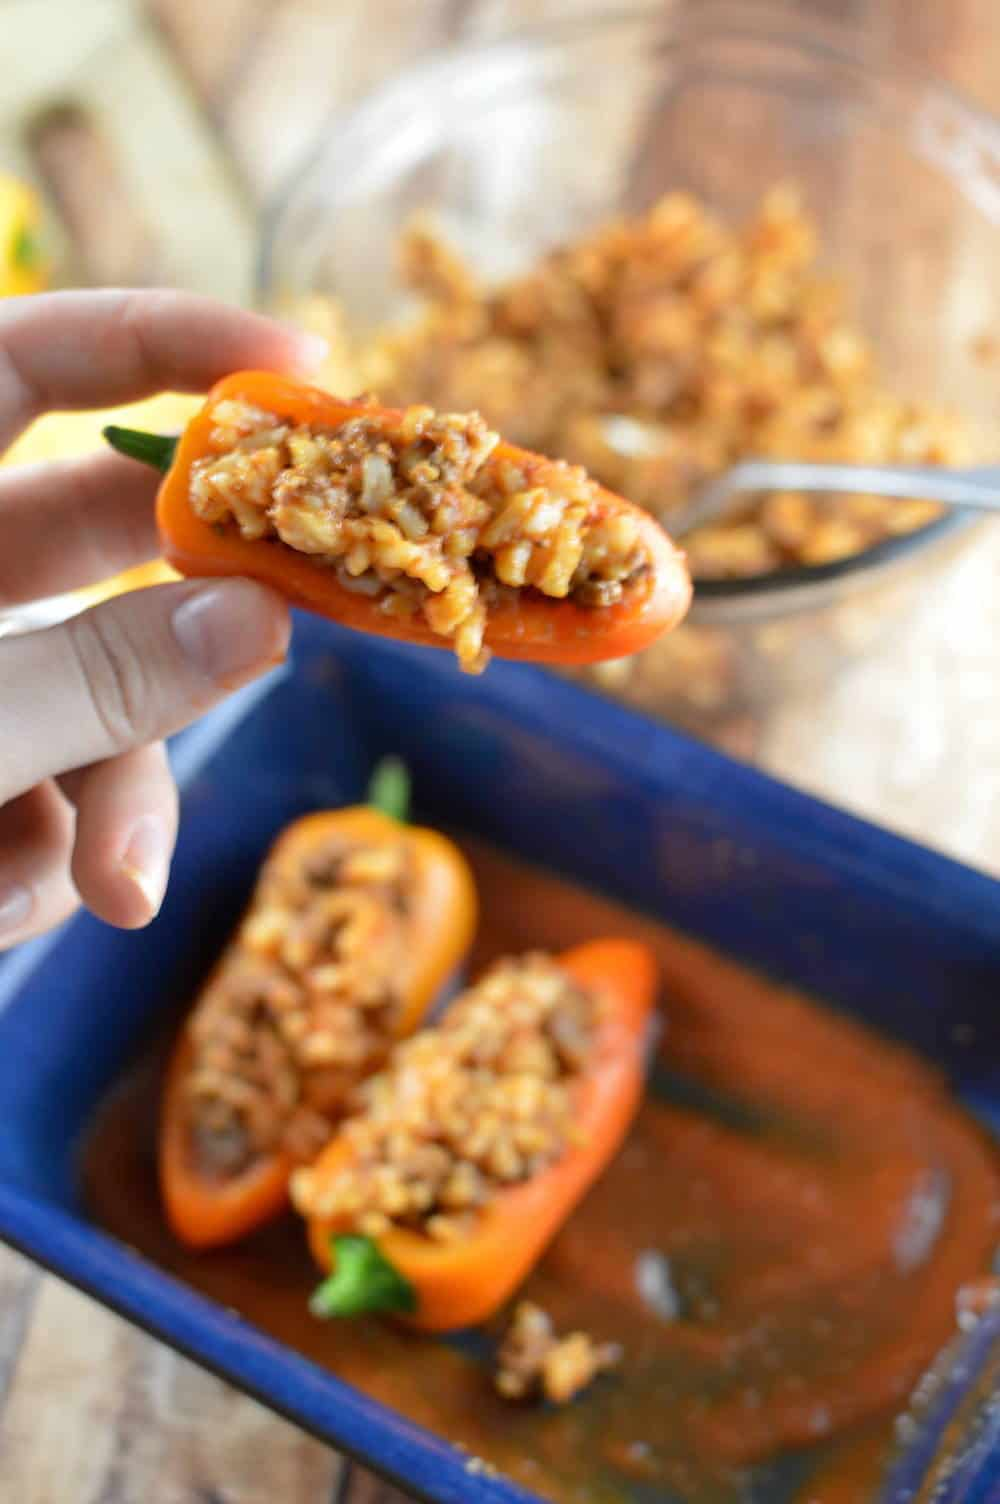 Mini peppers stuffed with a rice mixture